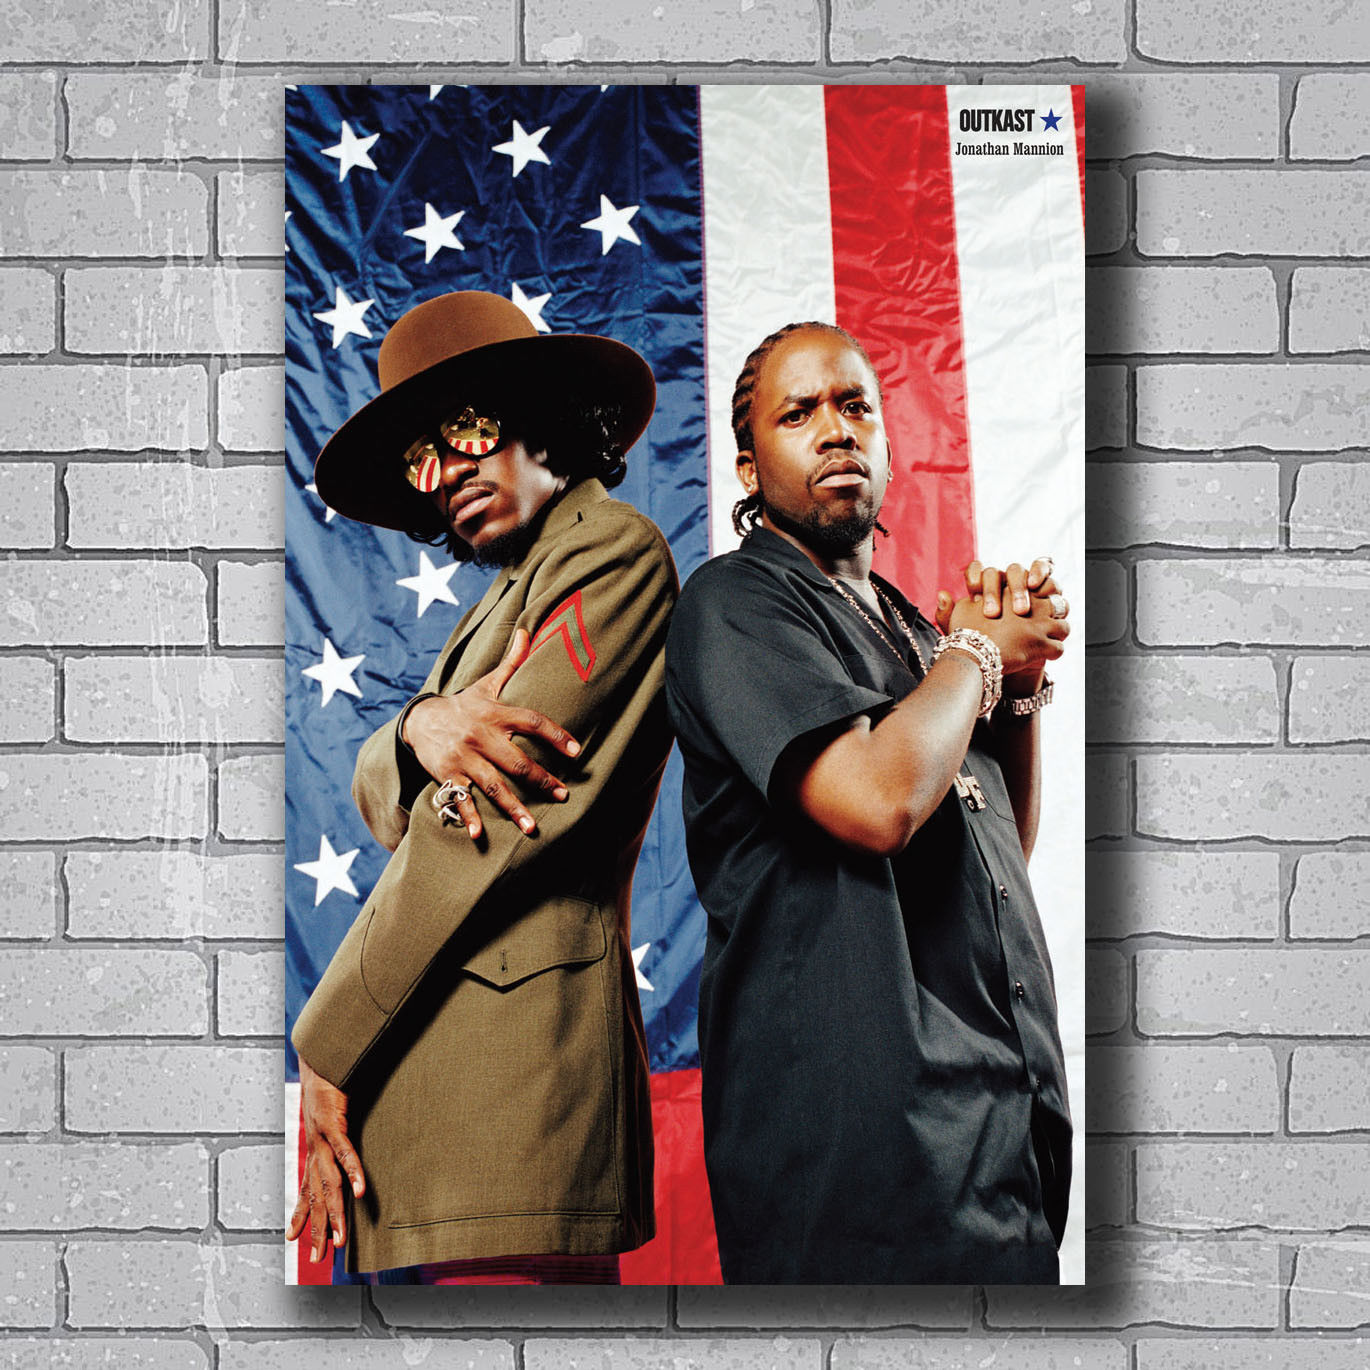 N0643 OUTKAST Stankonia Hip Hop Duo Album Wall Sticker Silk Fabric Poster Art Indoor Decor Bright image